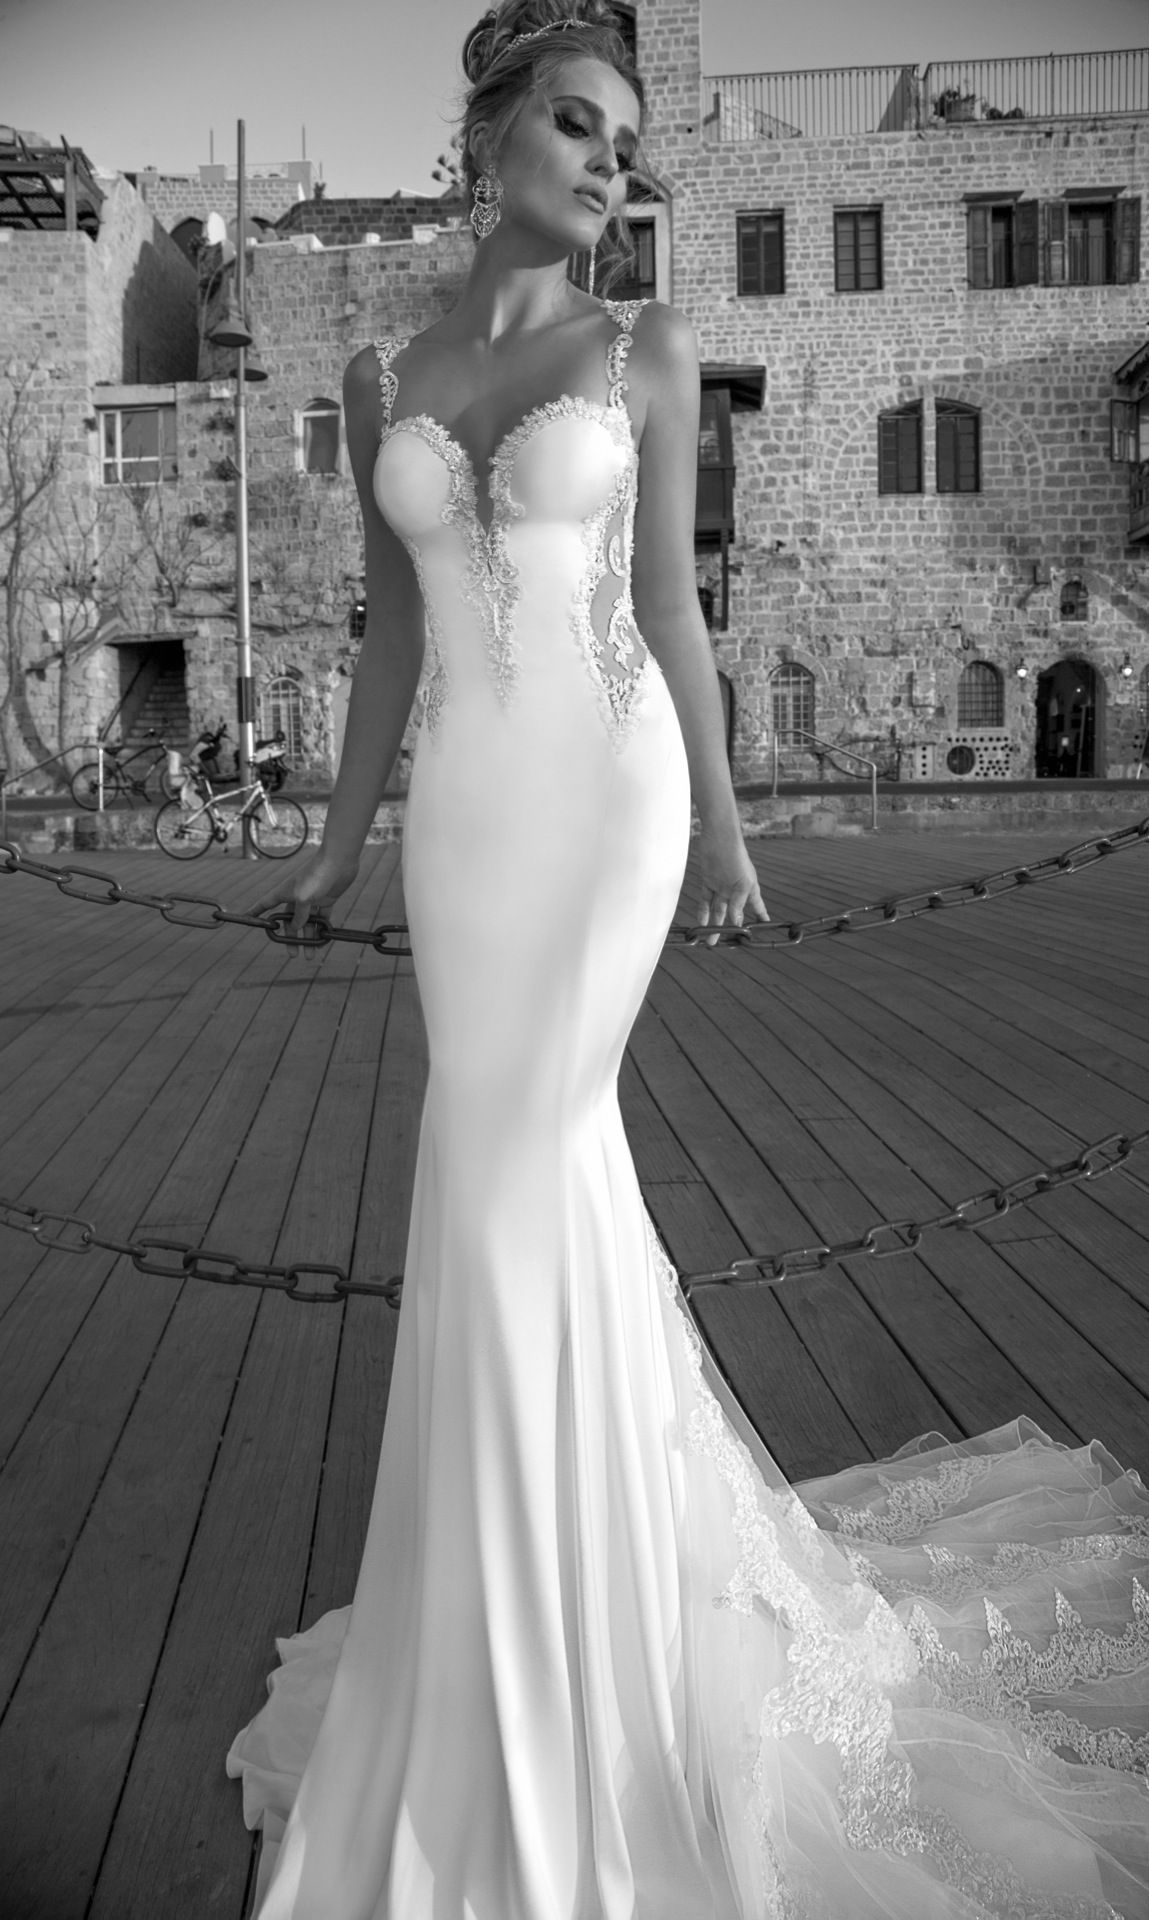 Galia Lahav Wedding Dresses With Y Open Back Designs To See More Http